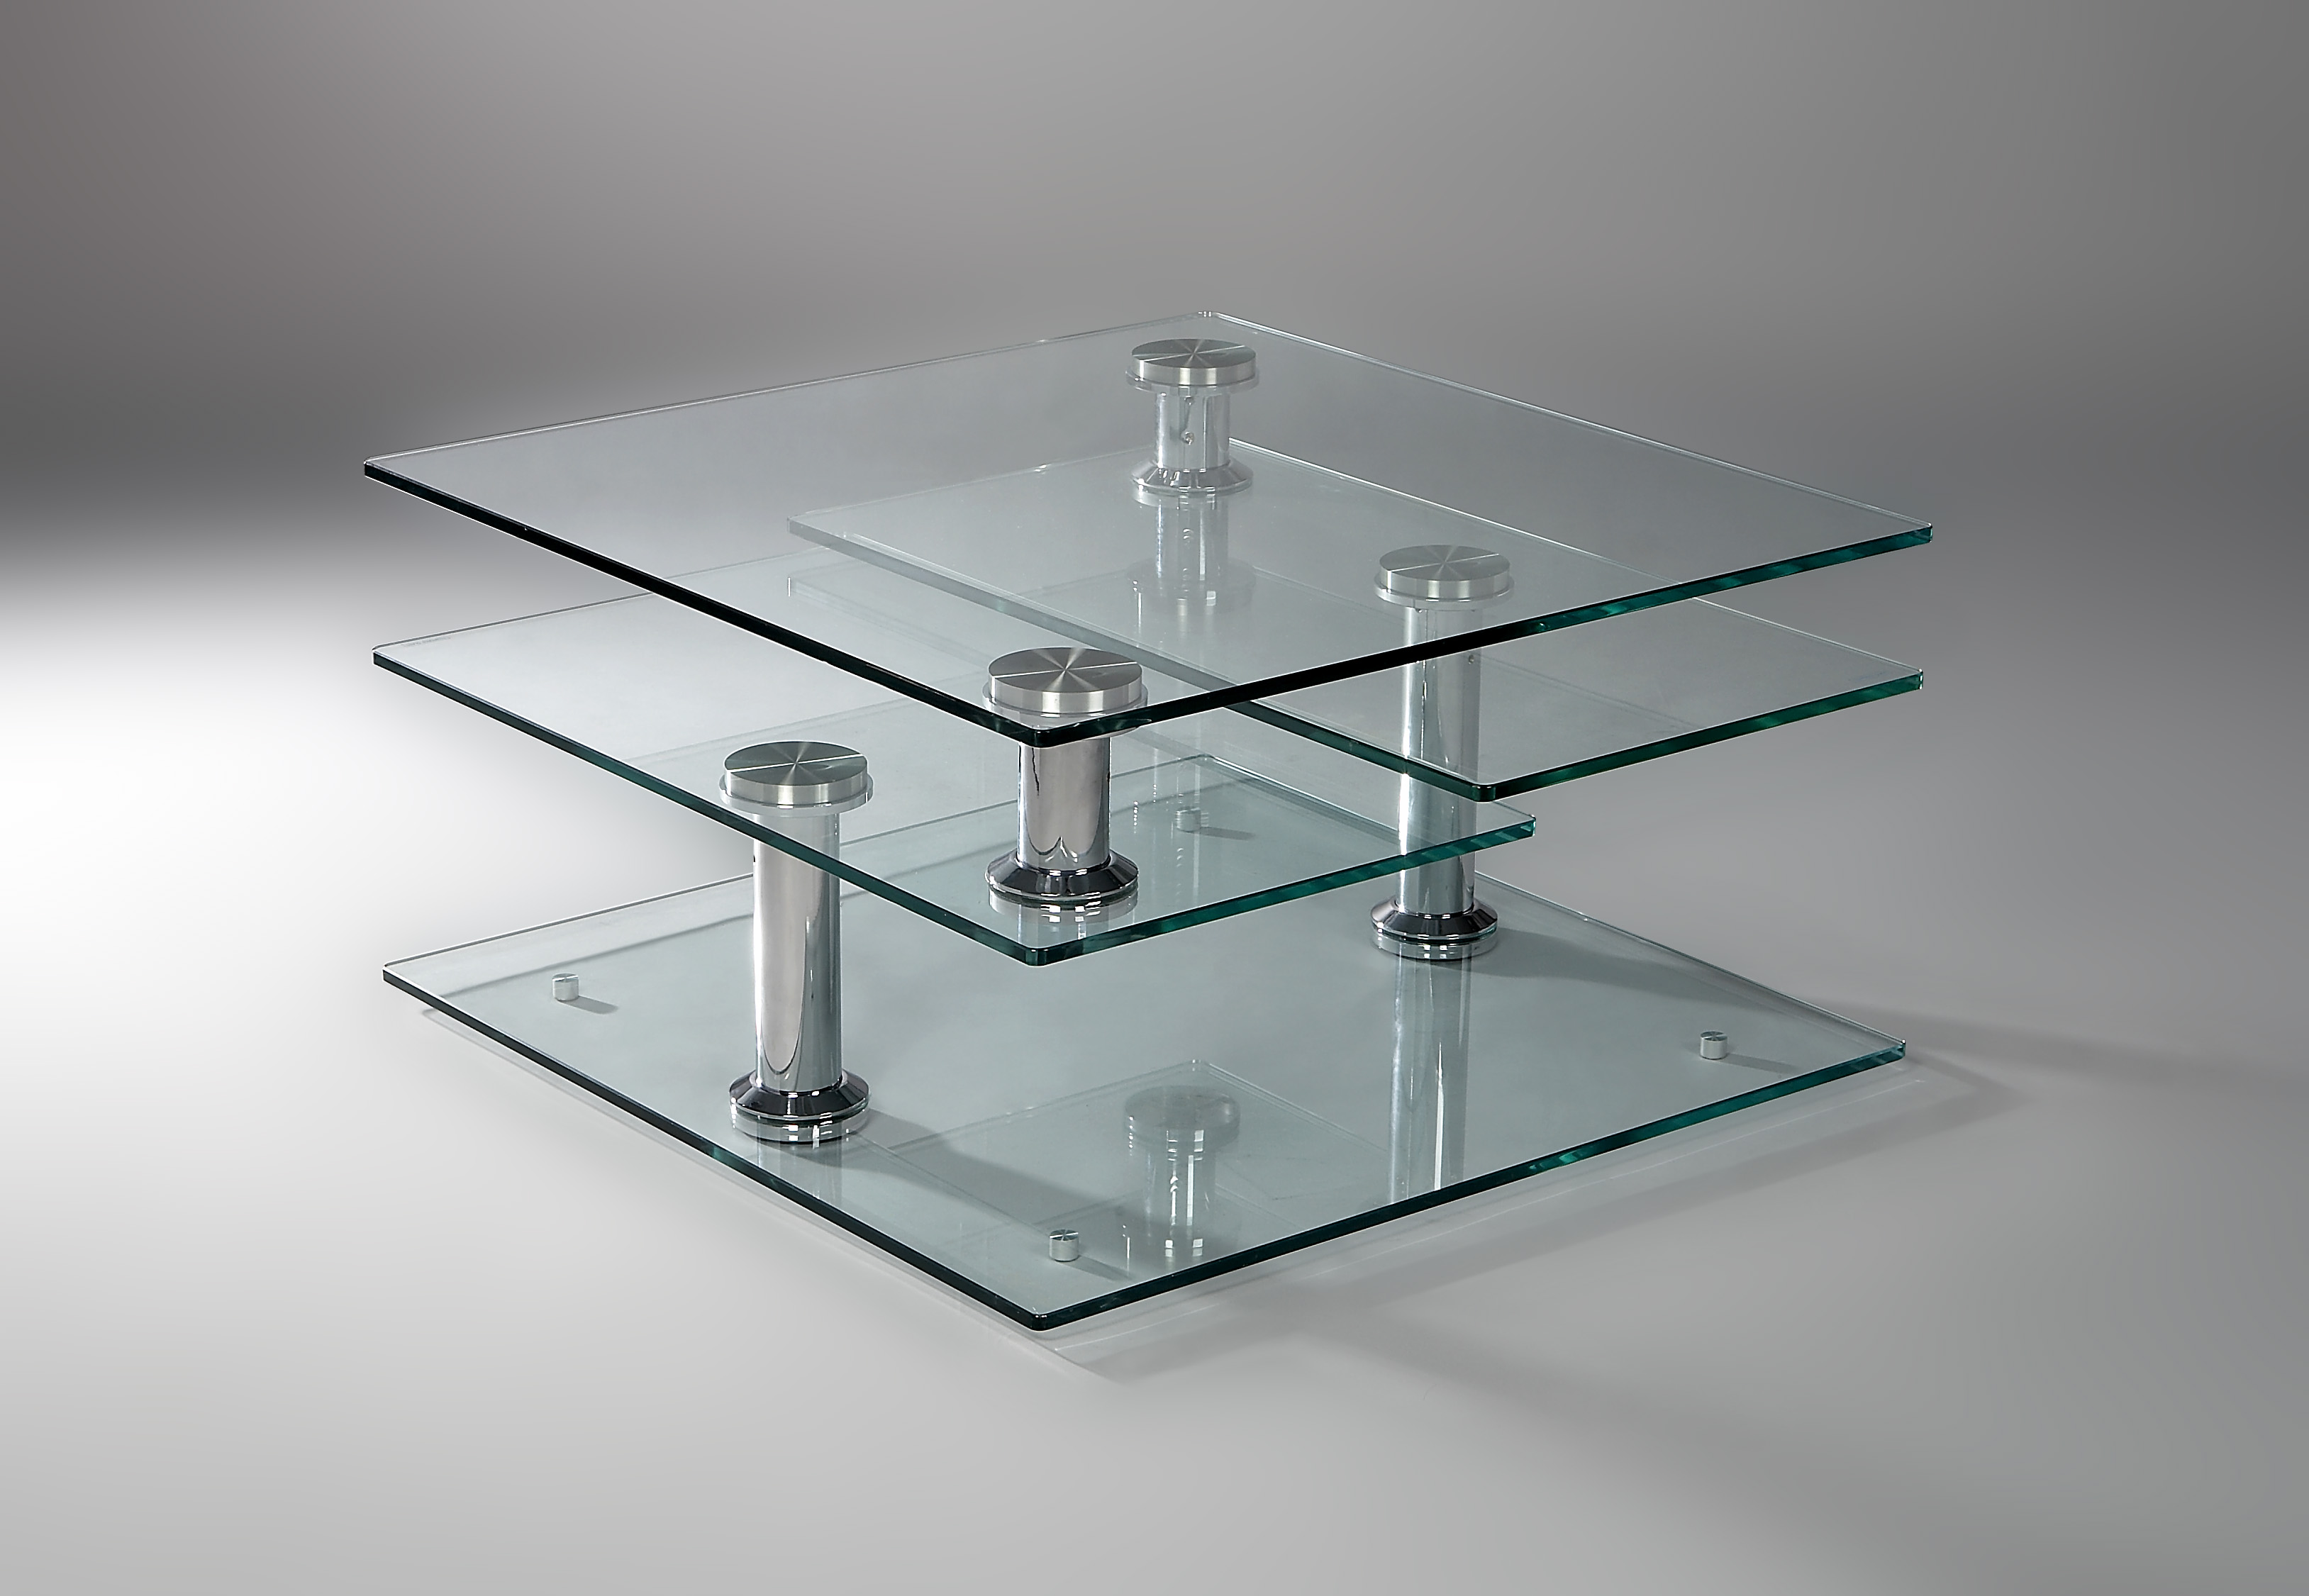 Table De Television En Verre Maison Design Hosnya Com # Table De Tele En Verre